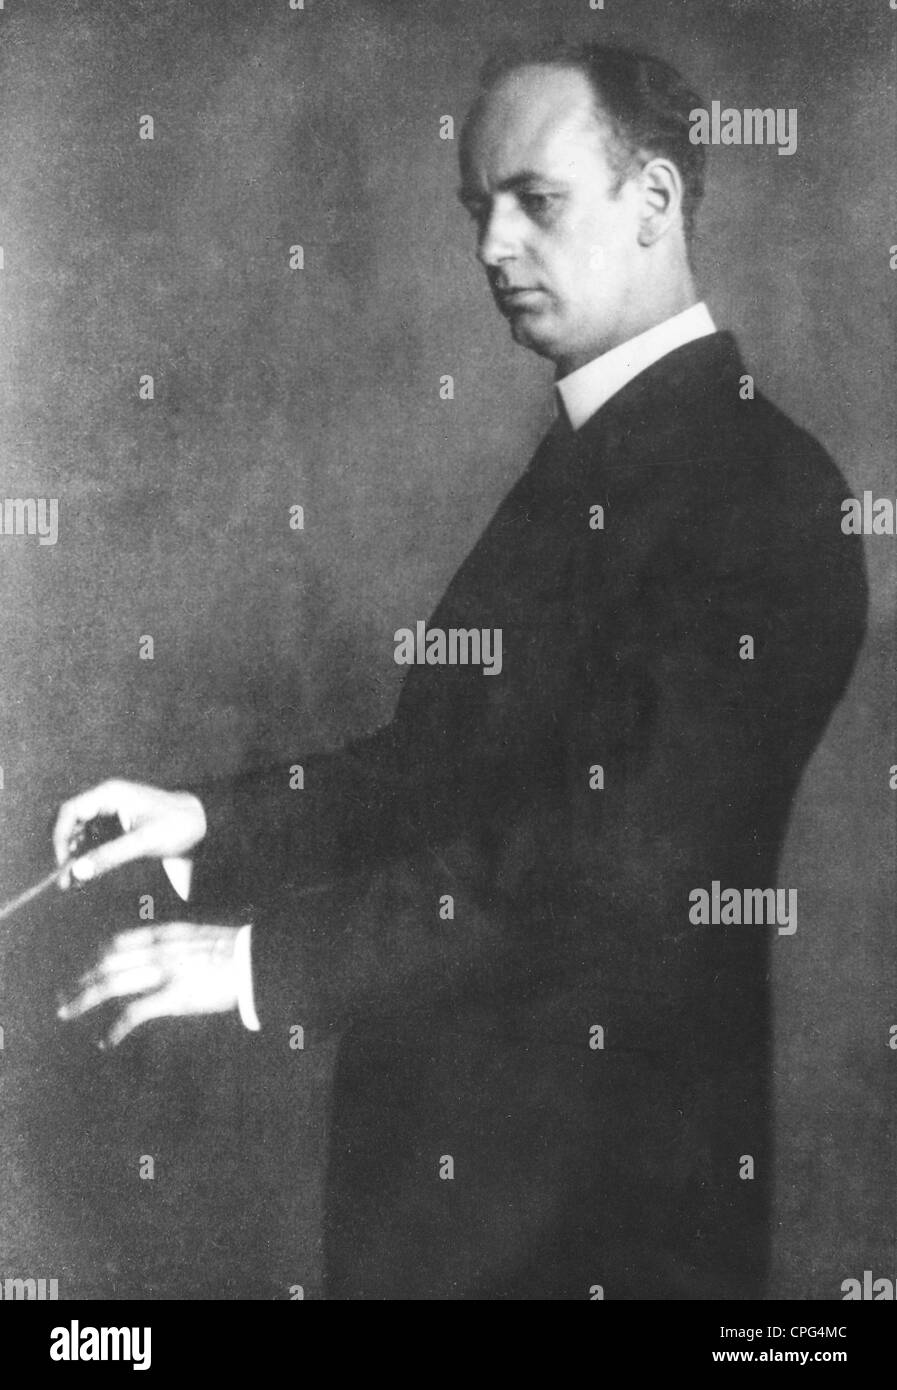 Furtwaengler, Wilhelm, 25.1.1886 - 30.11.1954, German musician (conductor, composer), half length, Additional-Rights - Stock Image